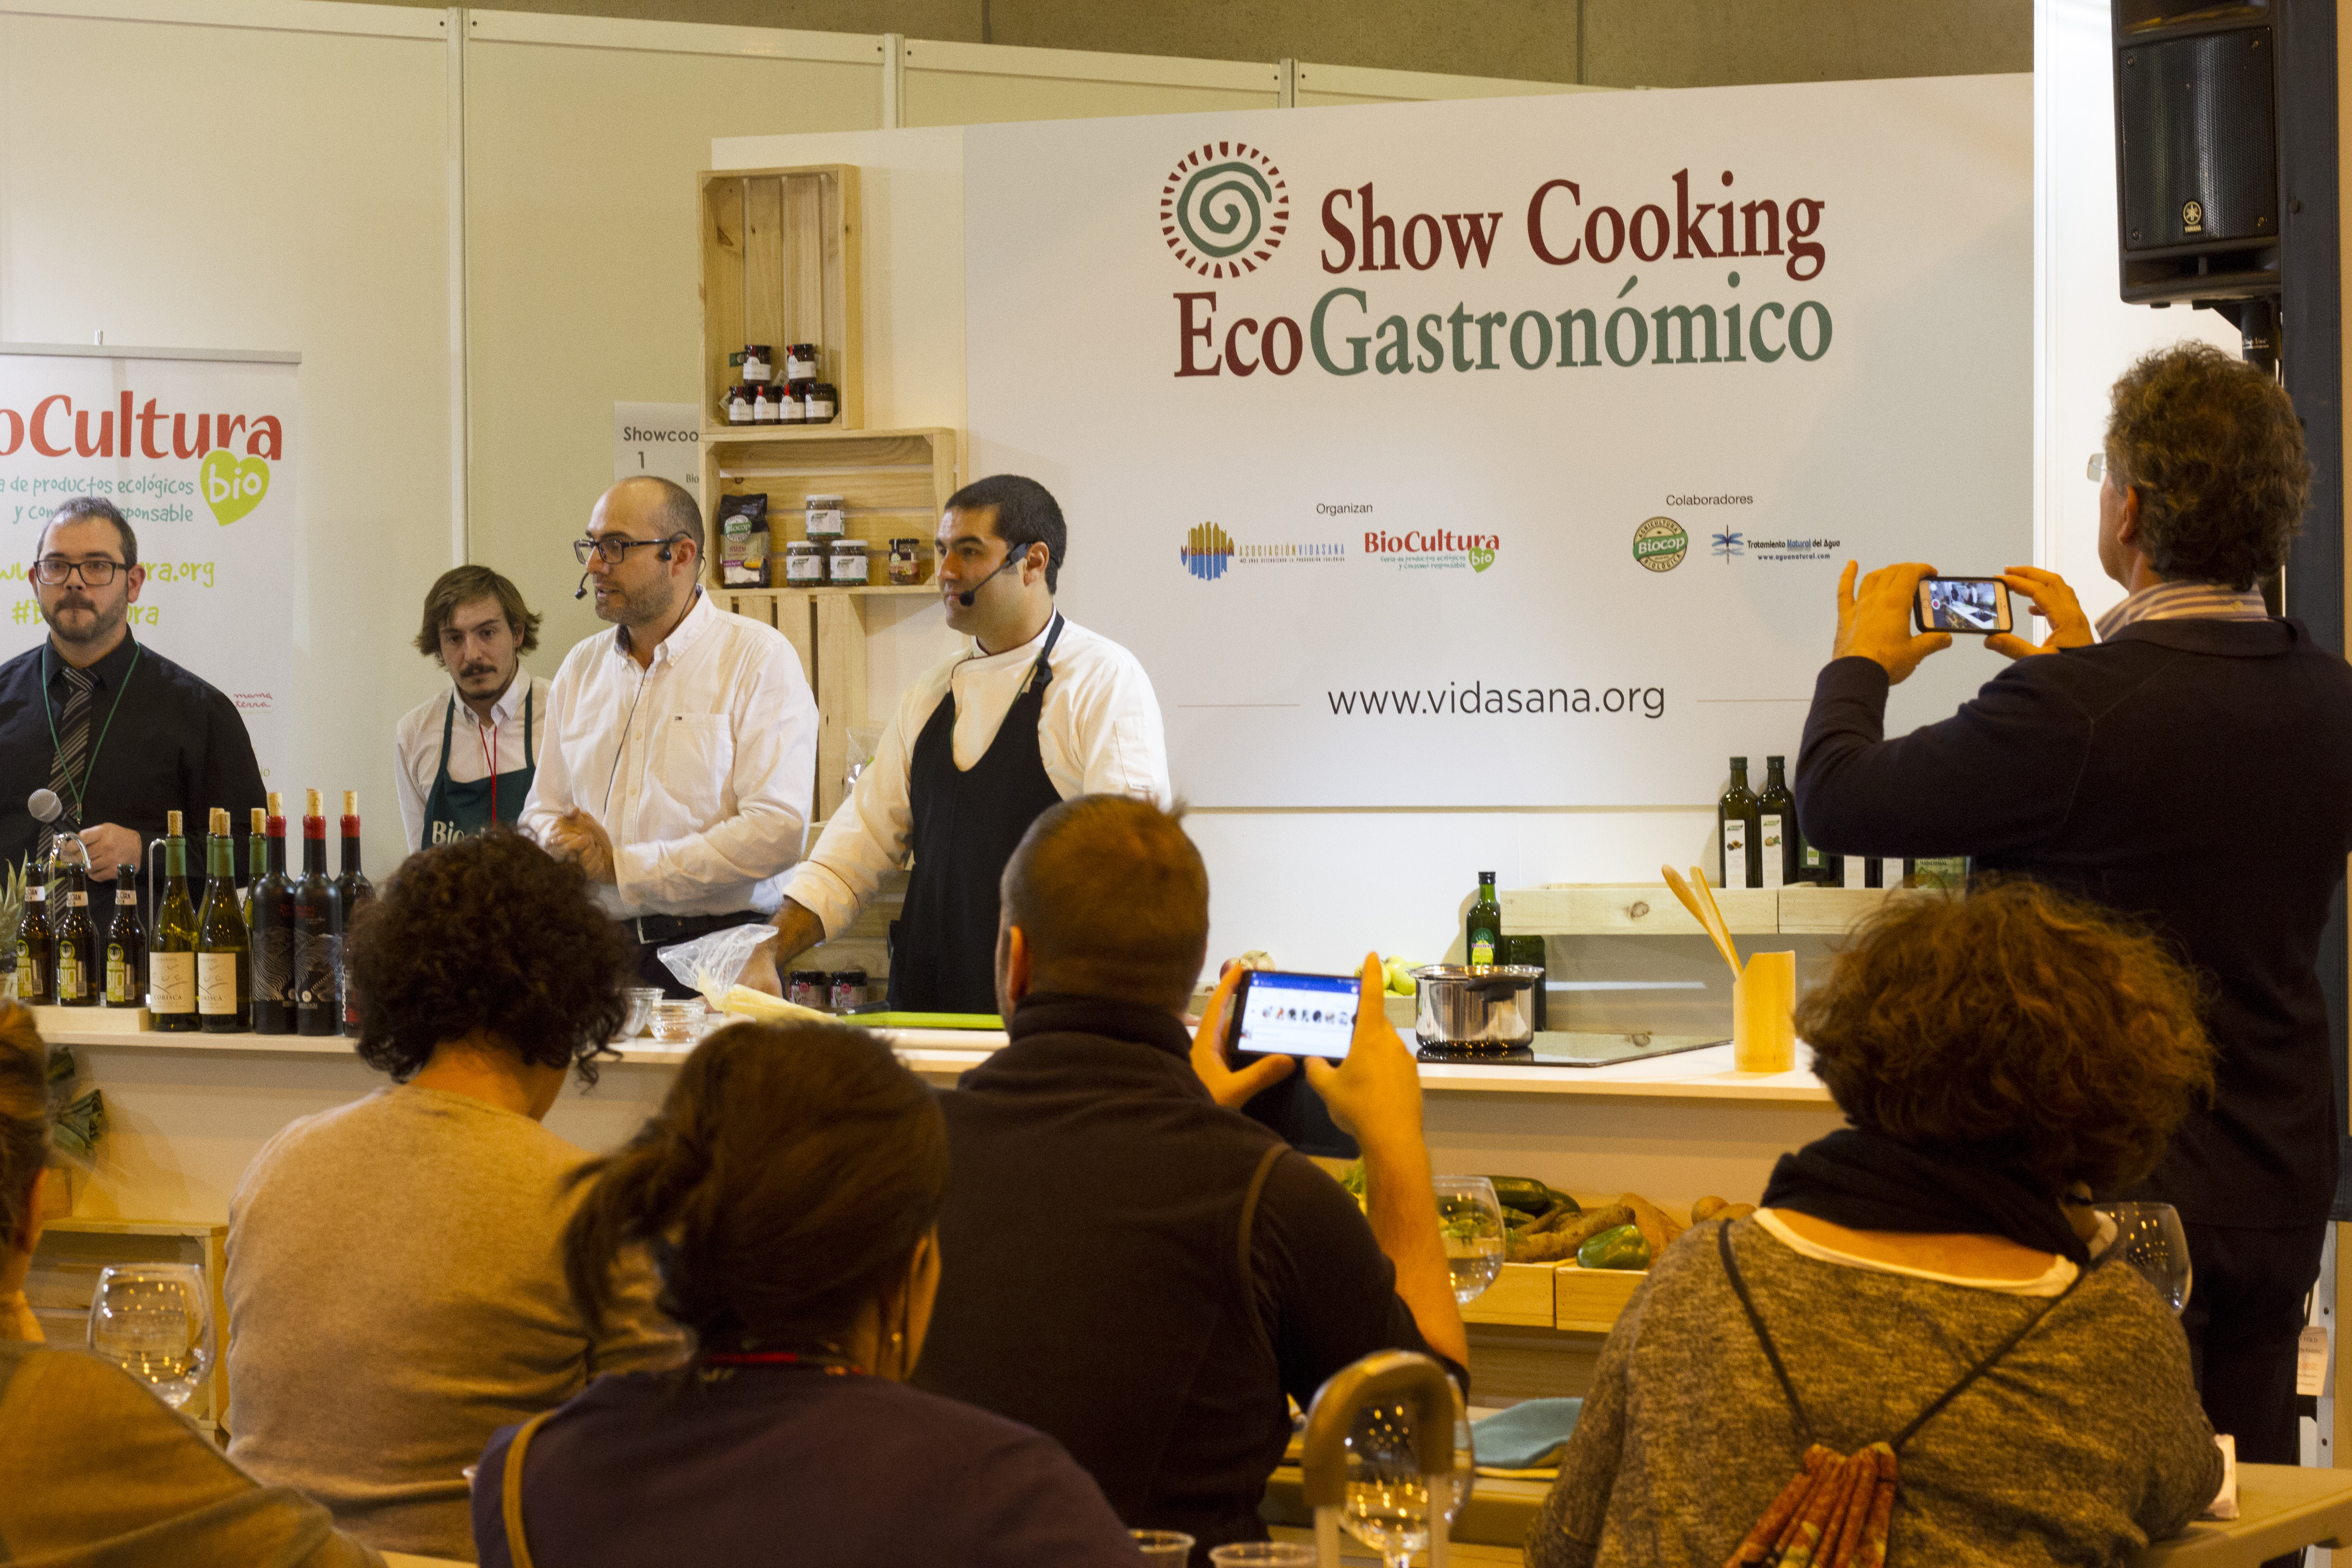 Showcooking BioCultura Madrid 2017 (1)